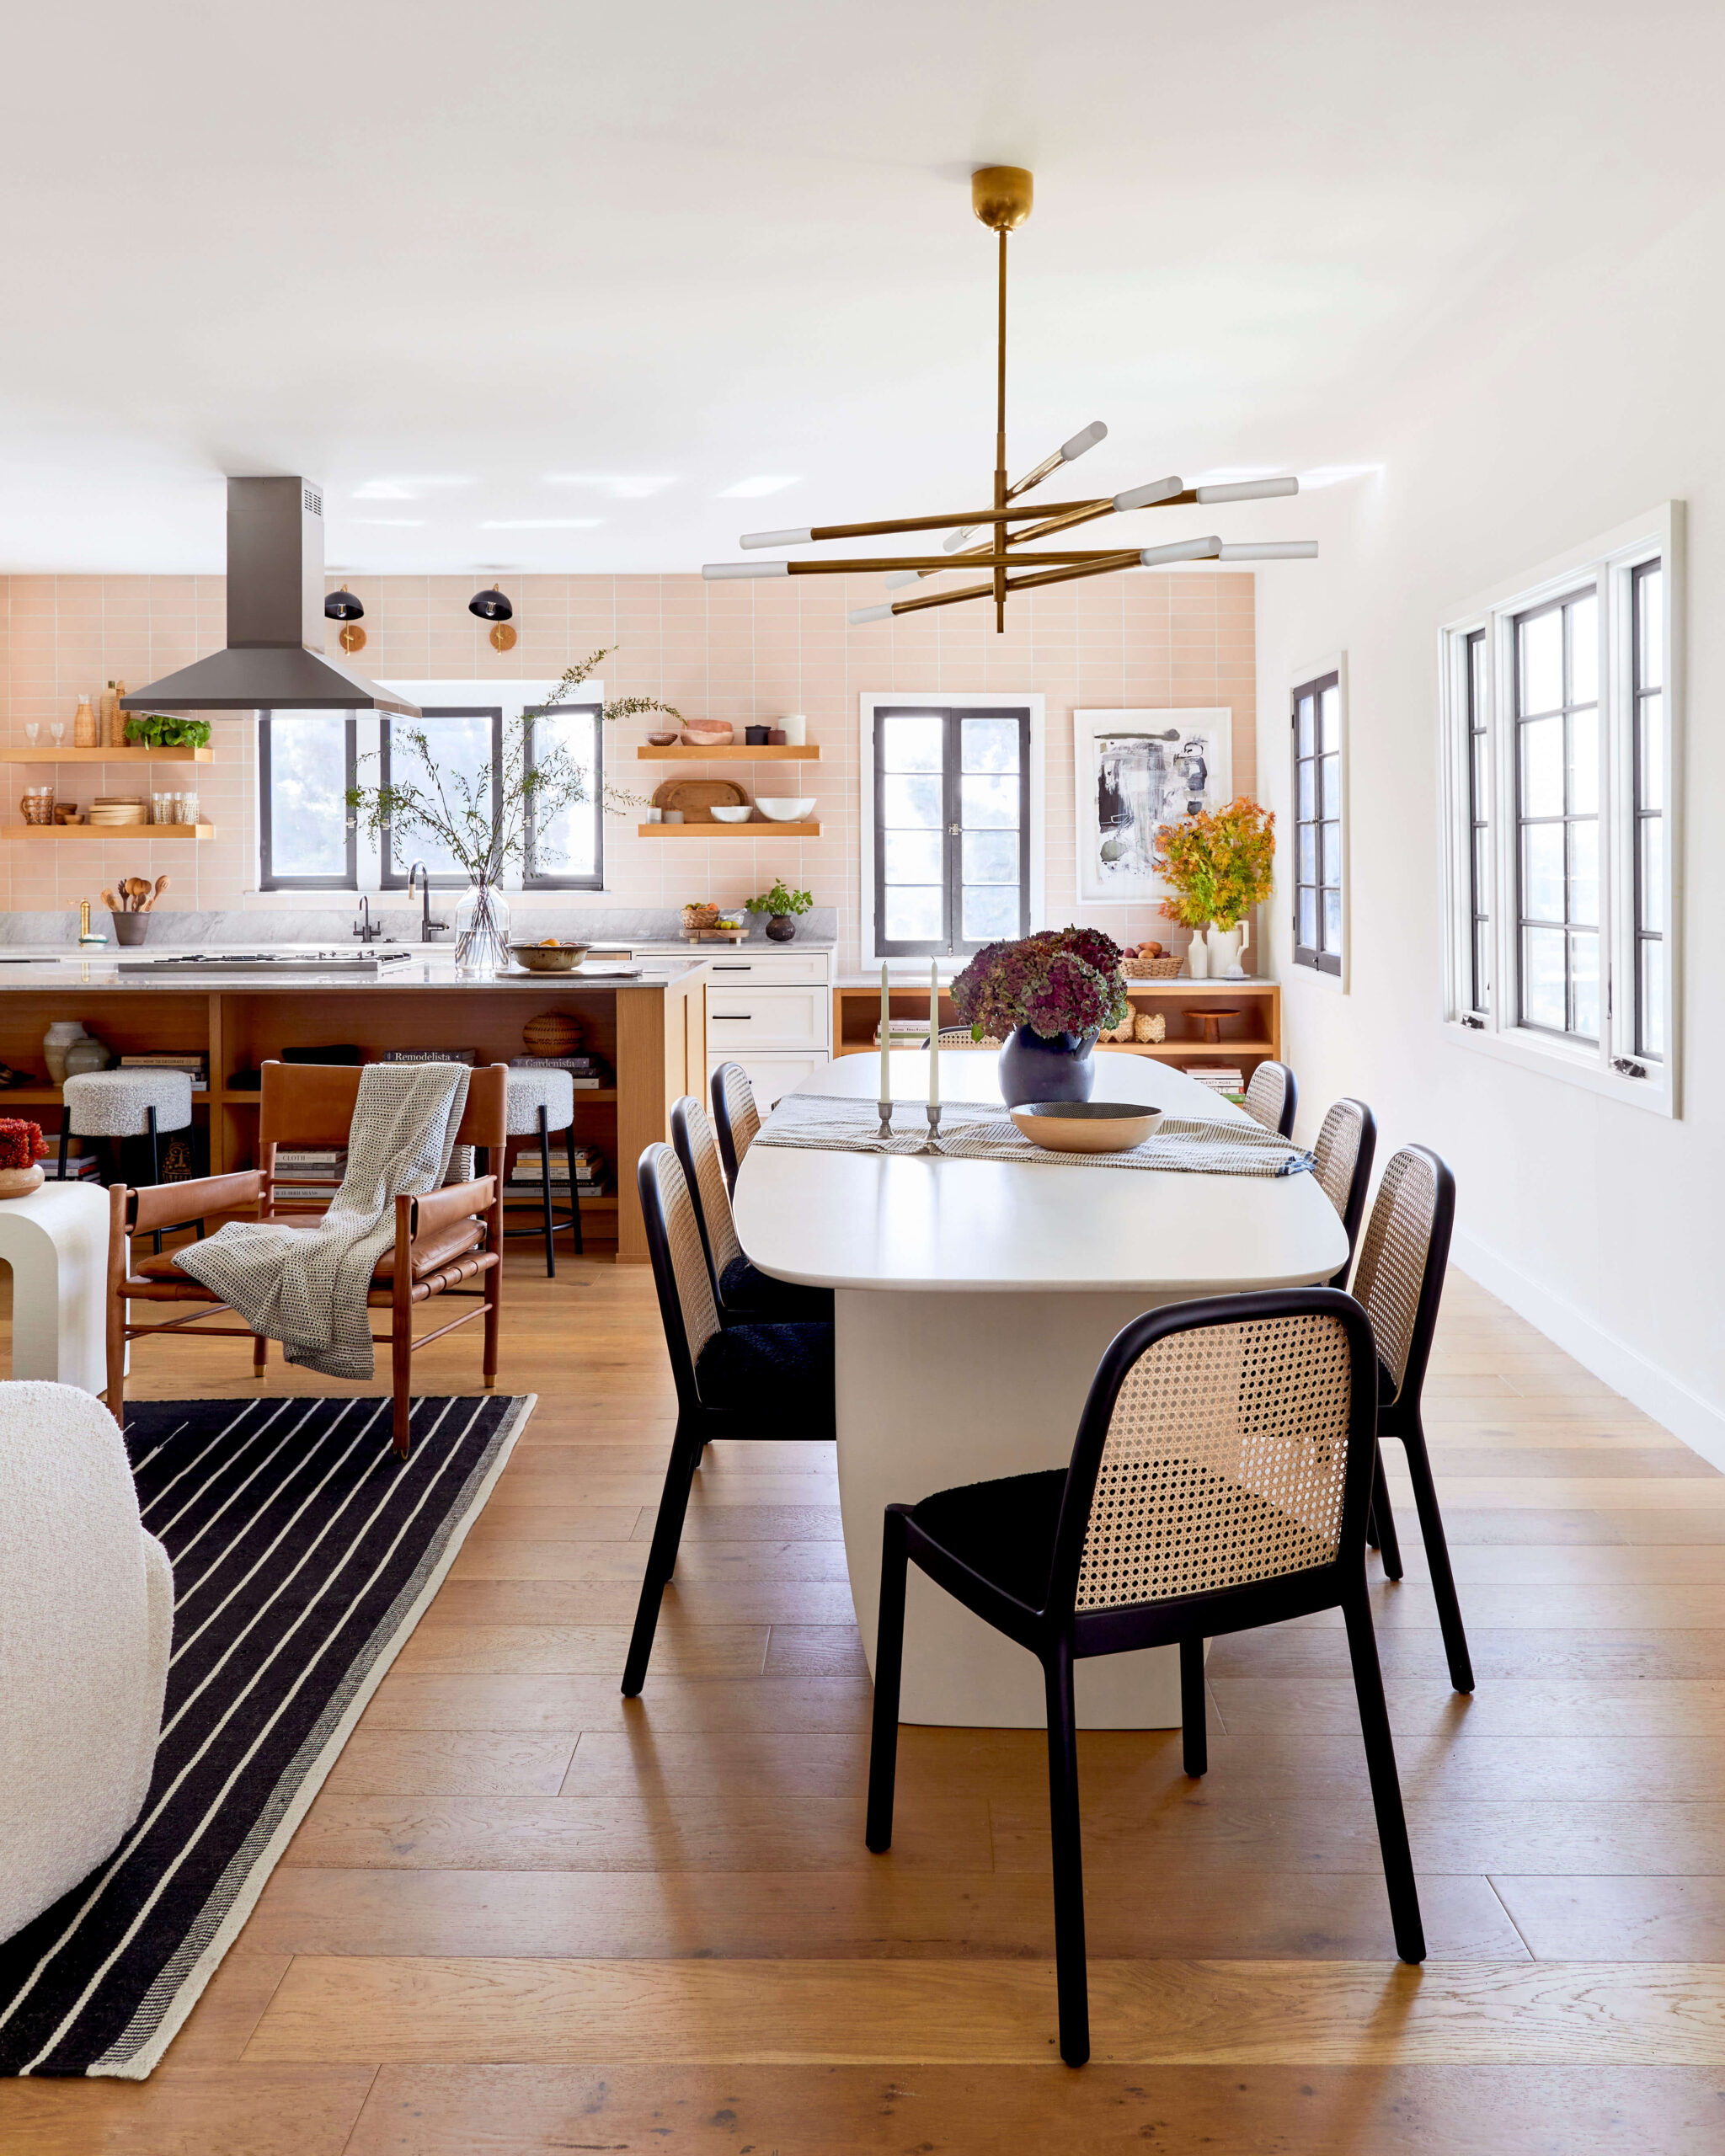 GINNY_MACDONALD_JACLYN_JOHNSON_DINING_ROOM_OPEN_PLAN_KITCHEN_WHITE_TABLE